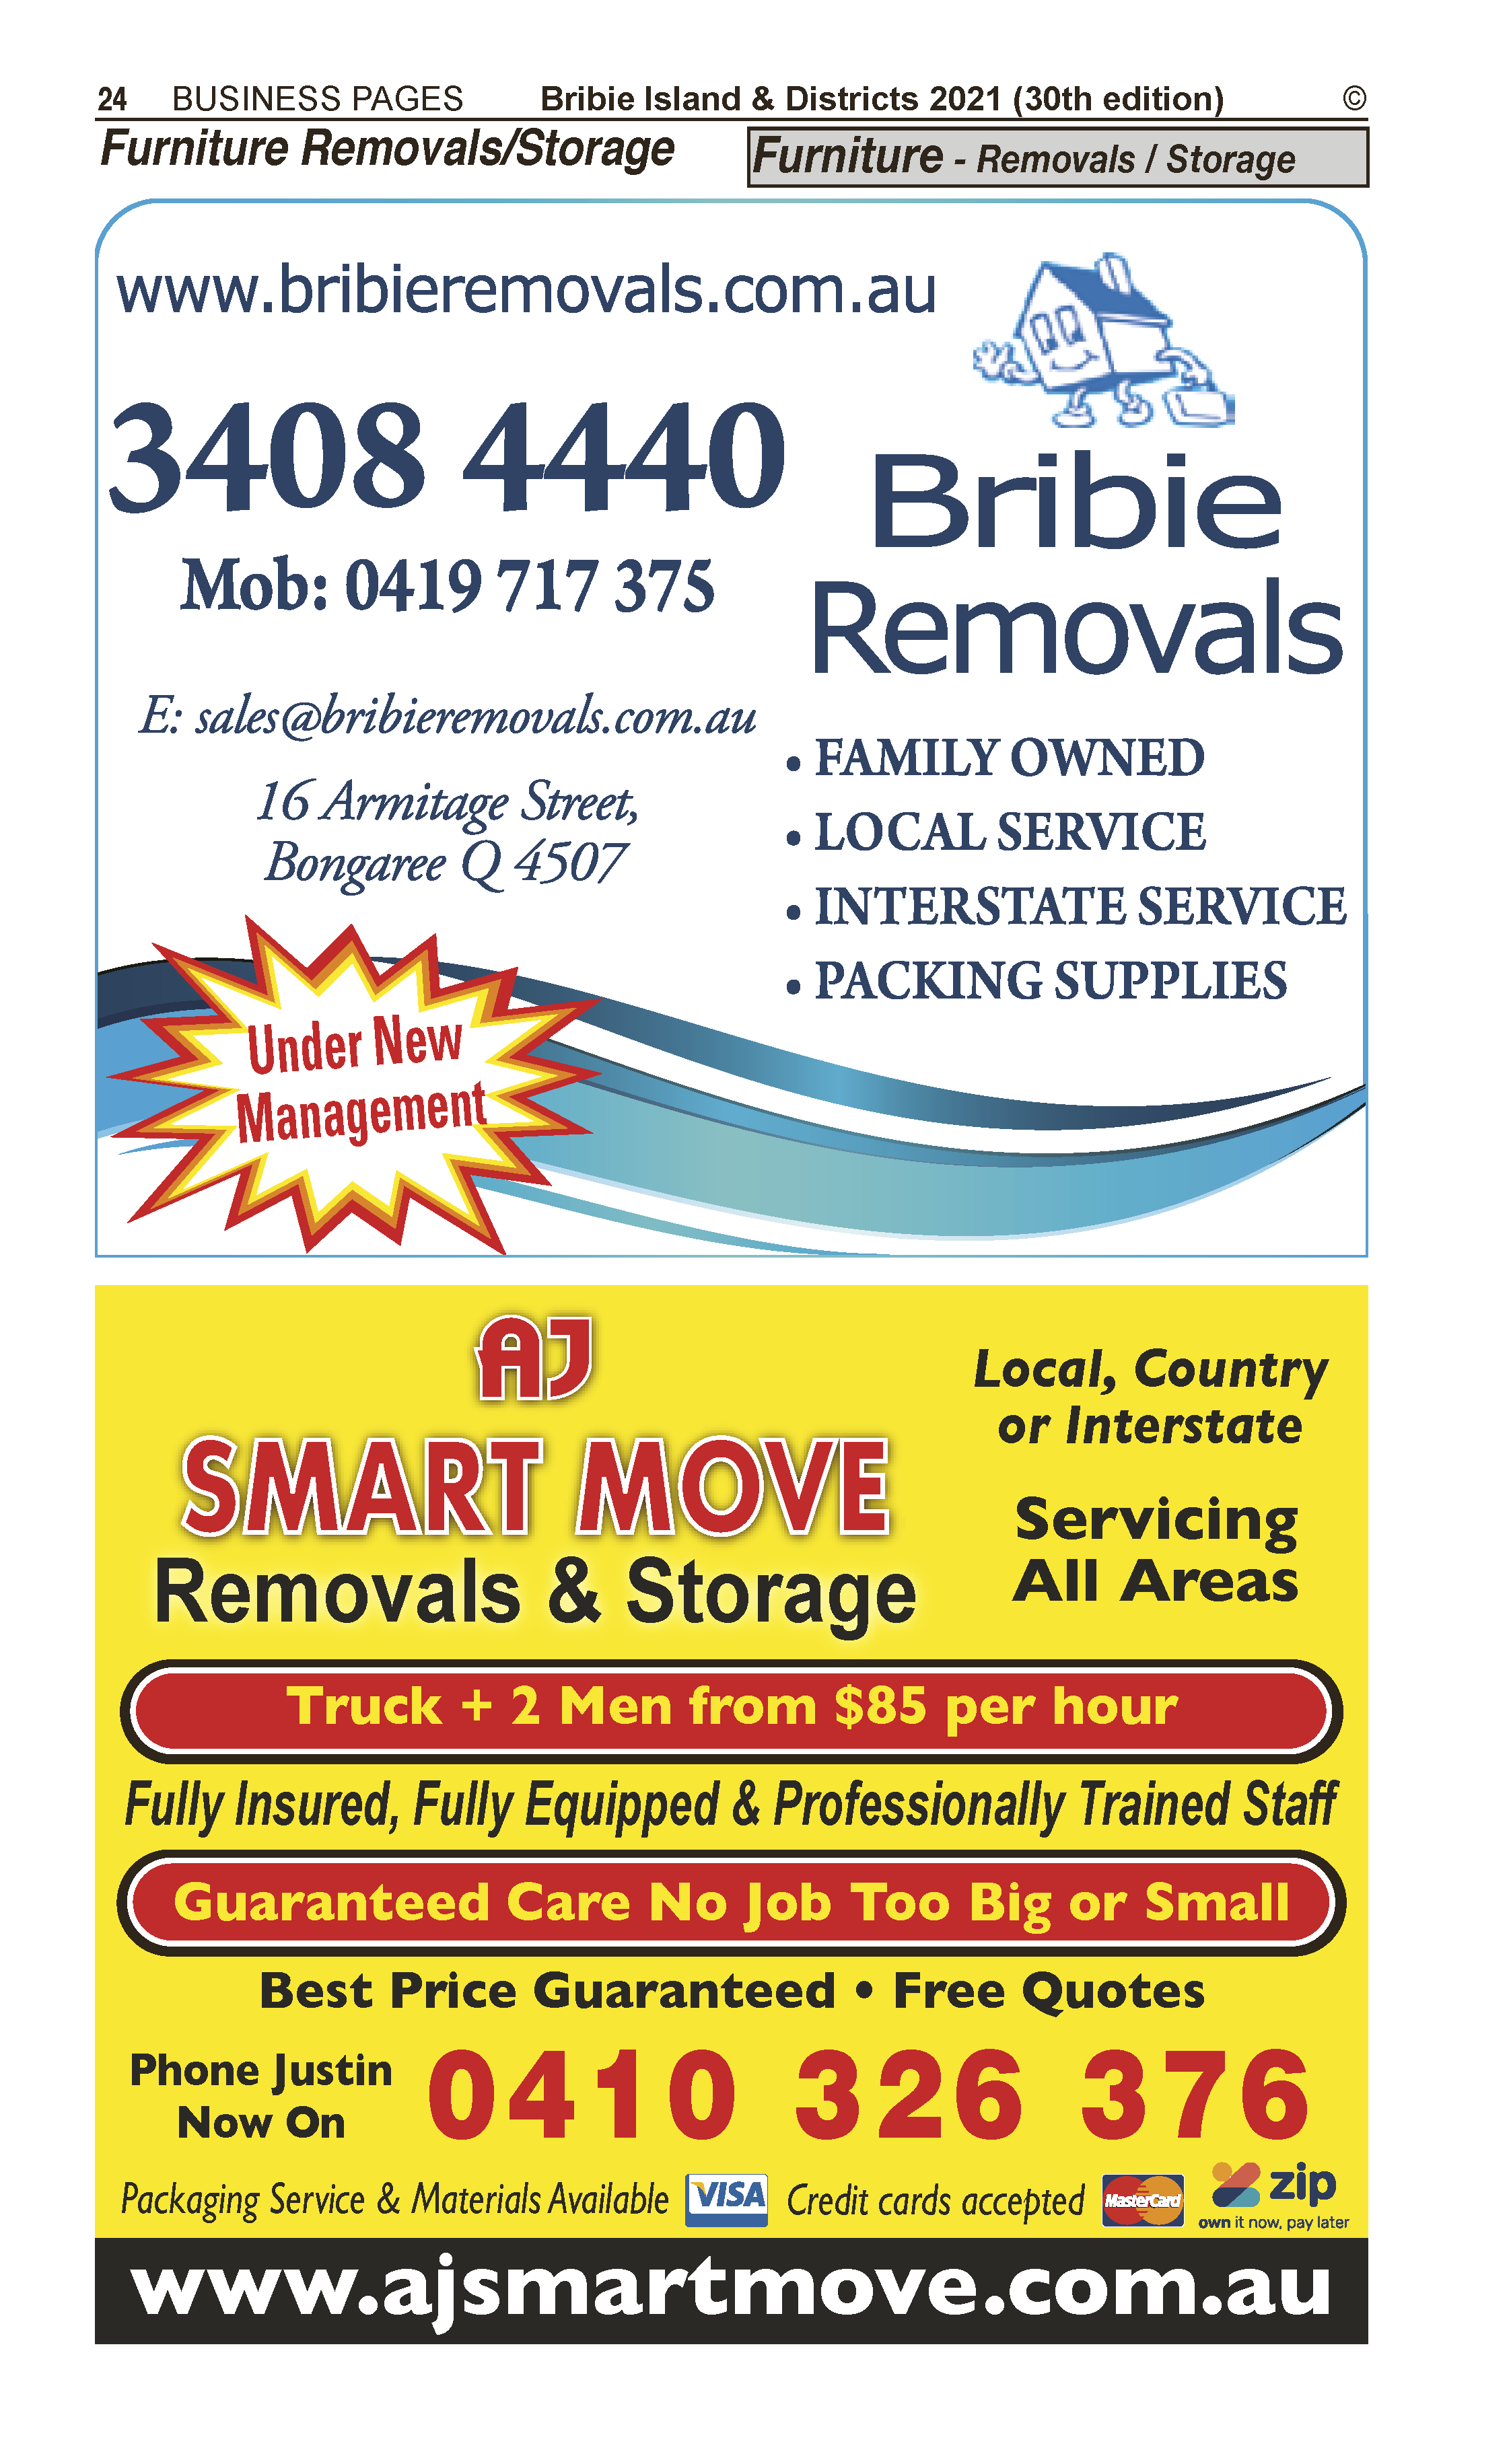 AJ Smart Move Removals & Storage | Furniture – Removals in Caboolture | PBezy Pocket Books local directories - page 24